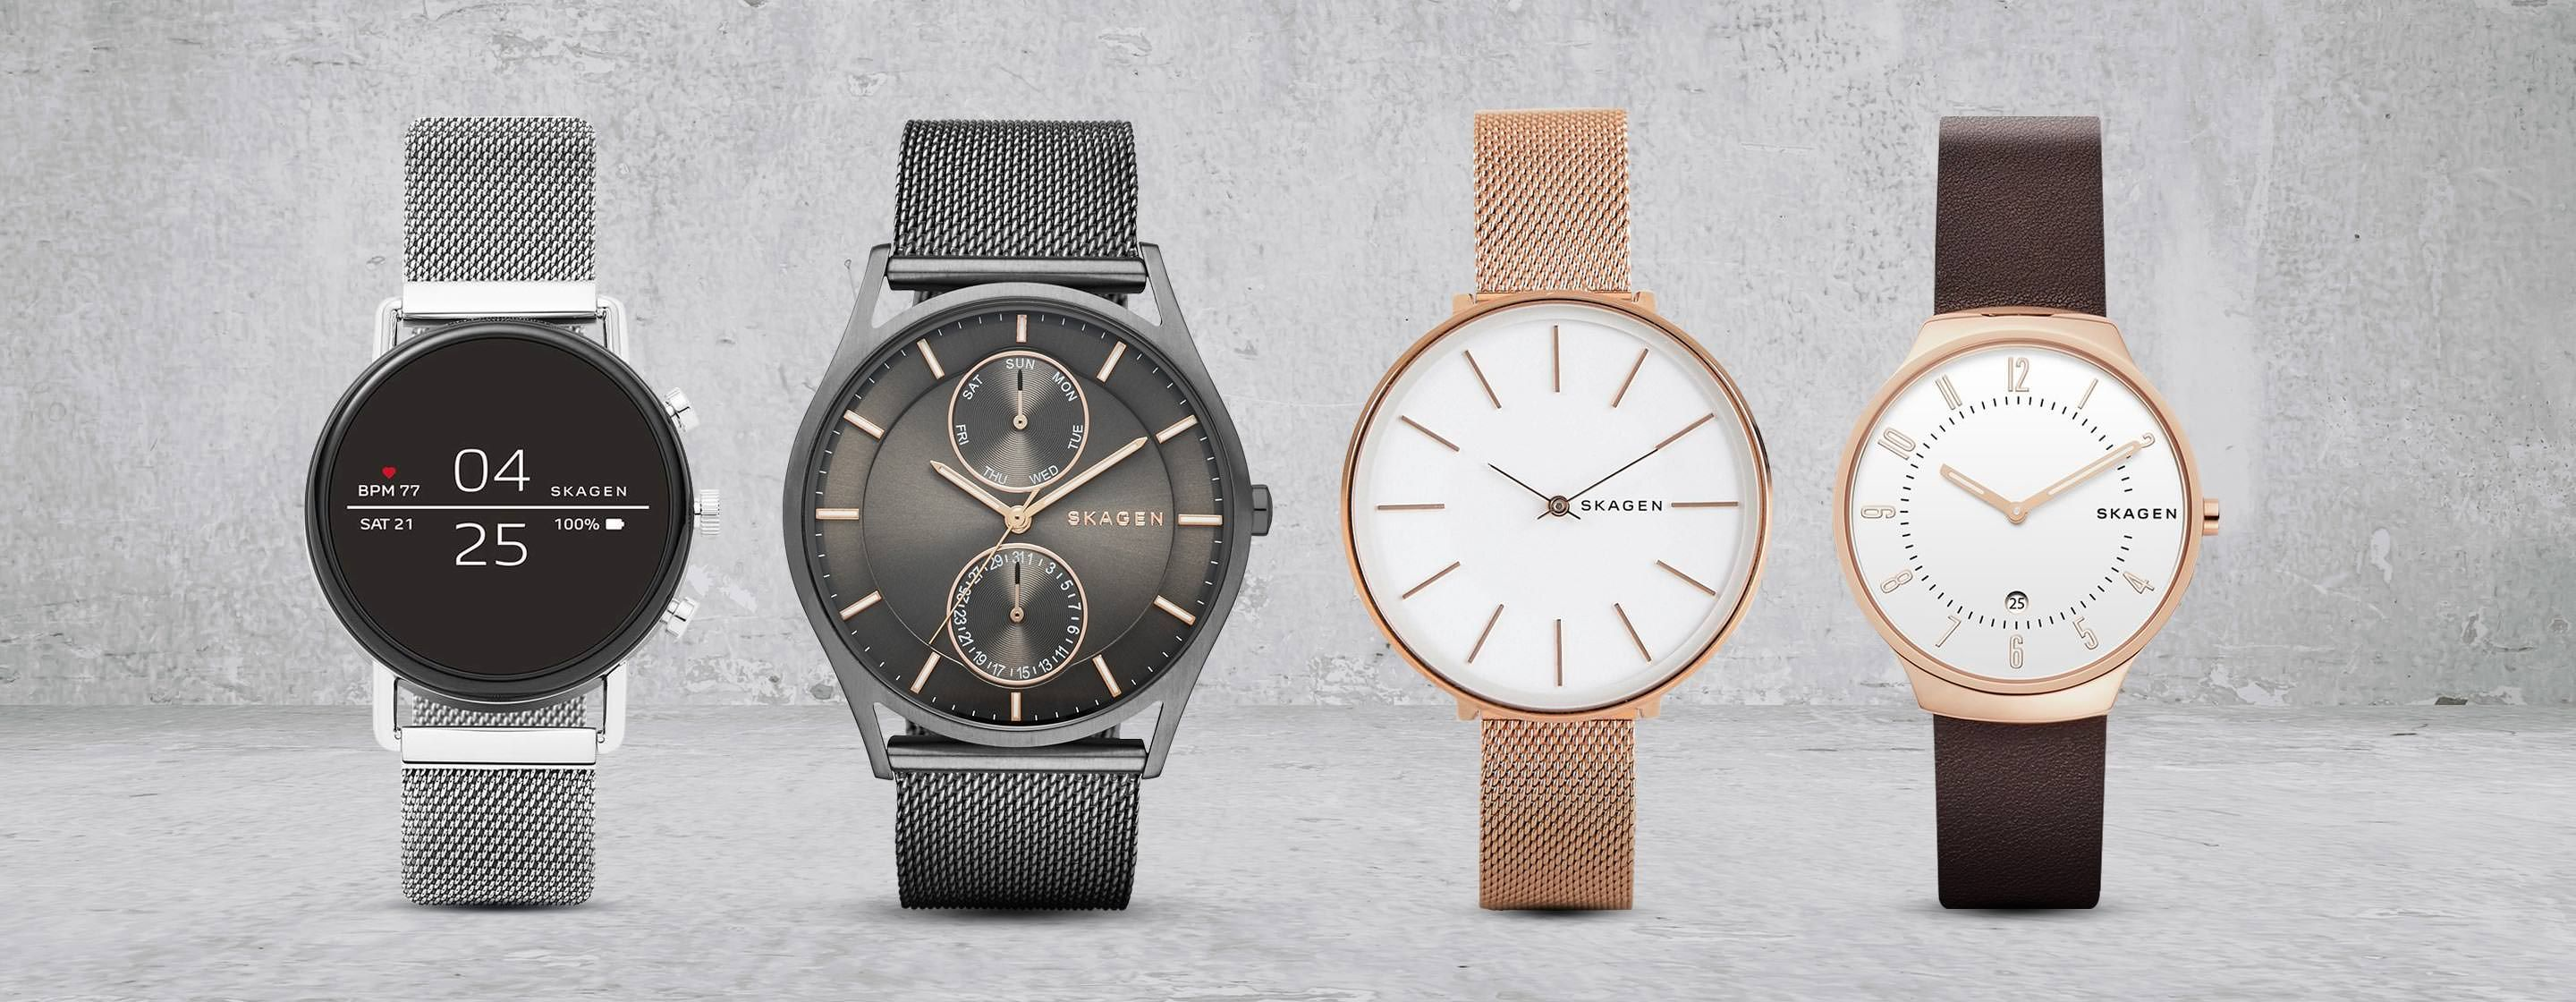 Top 10 Skagen Watches For Men And Women The Watch Guide